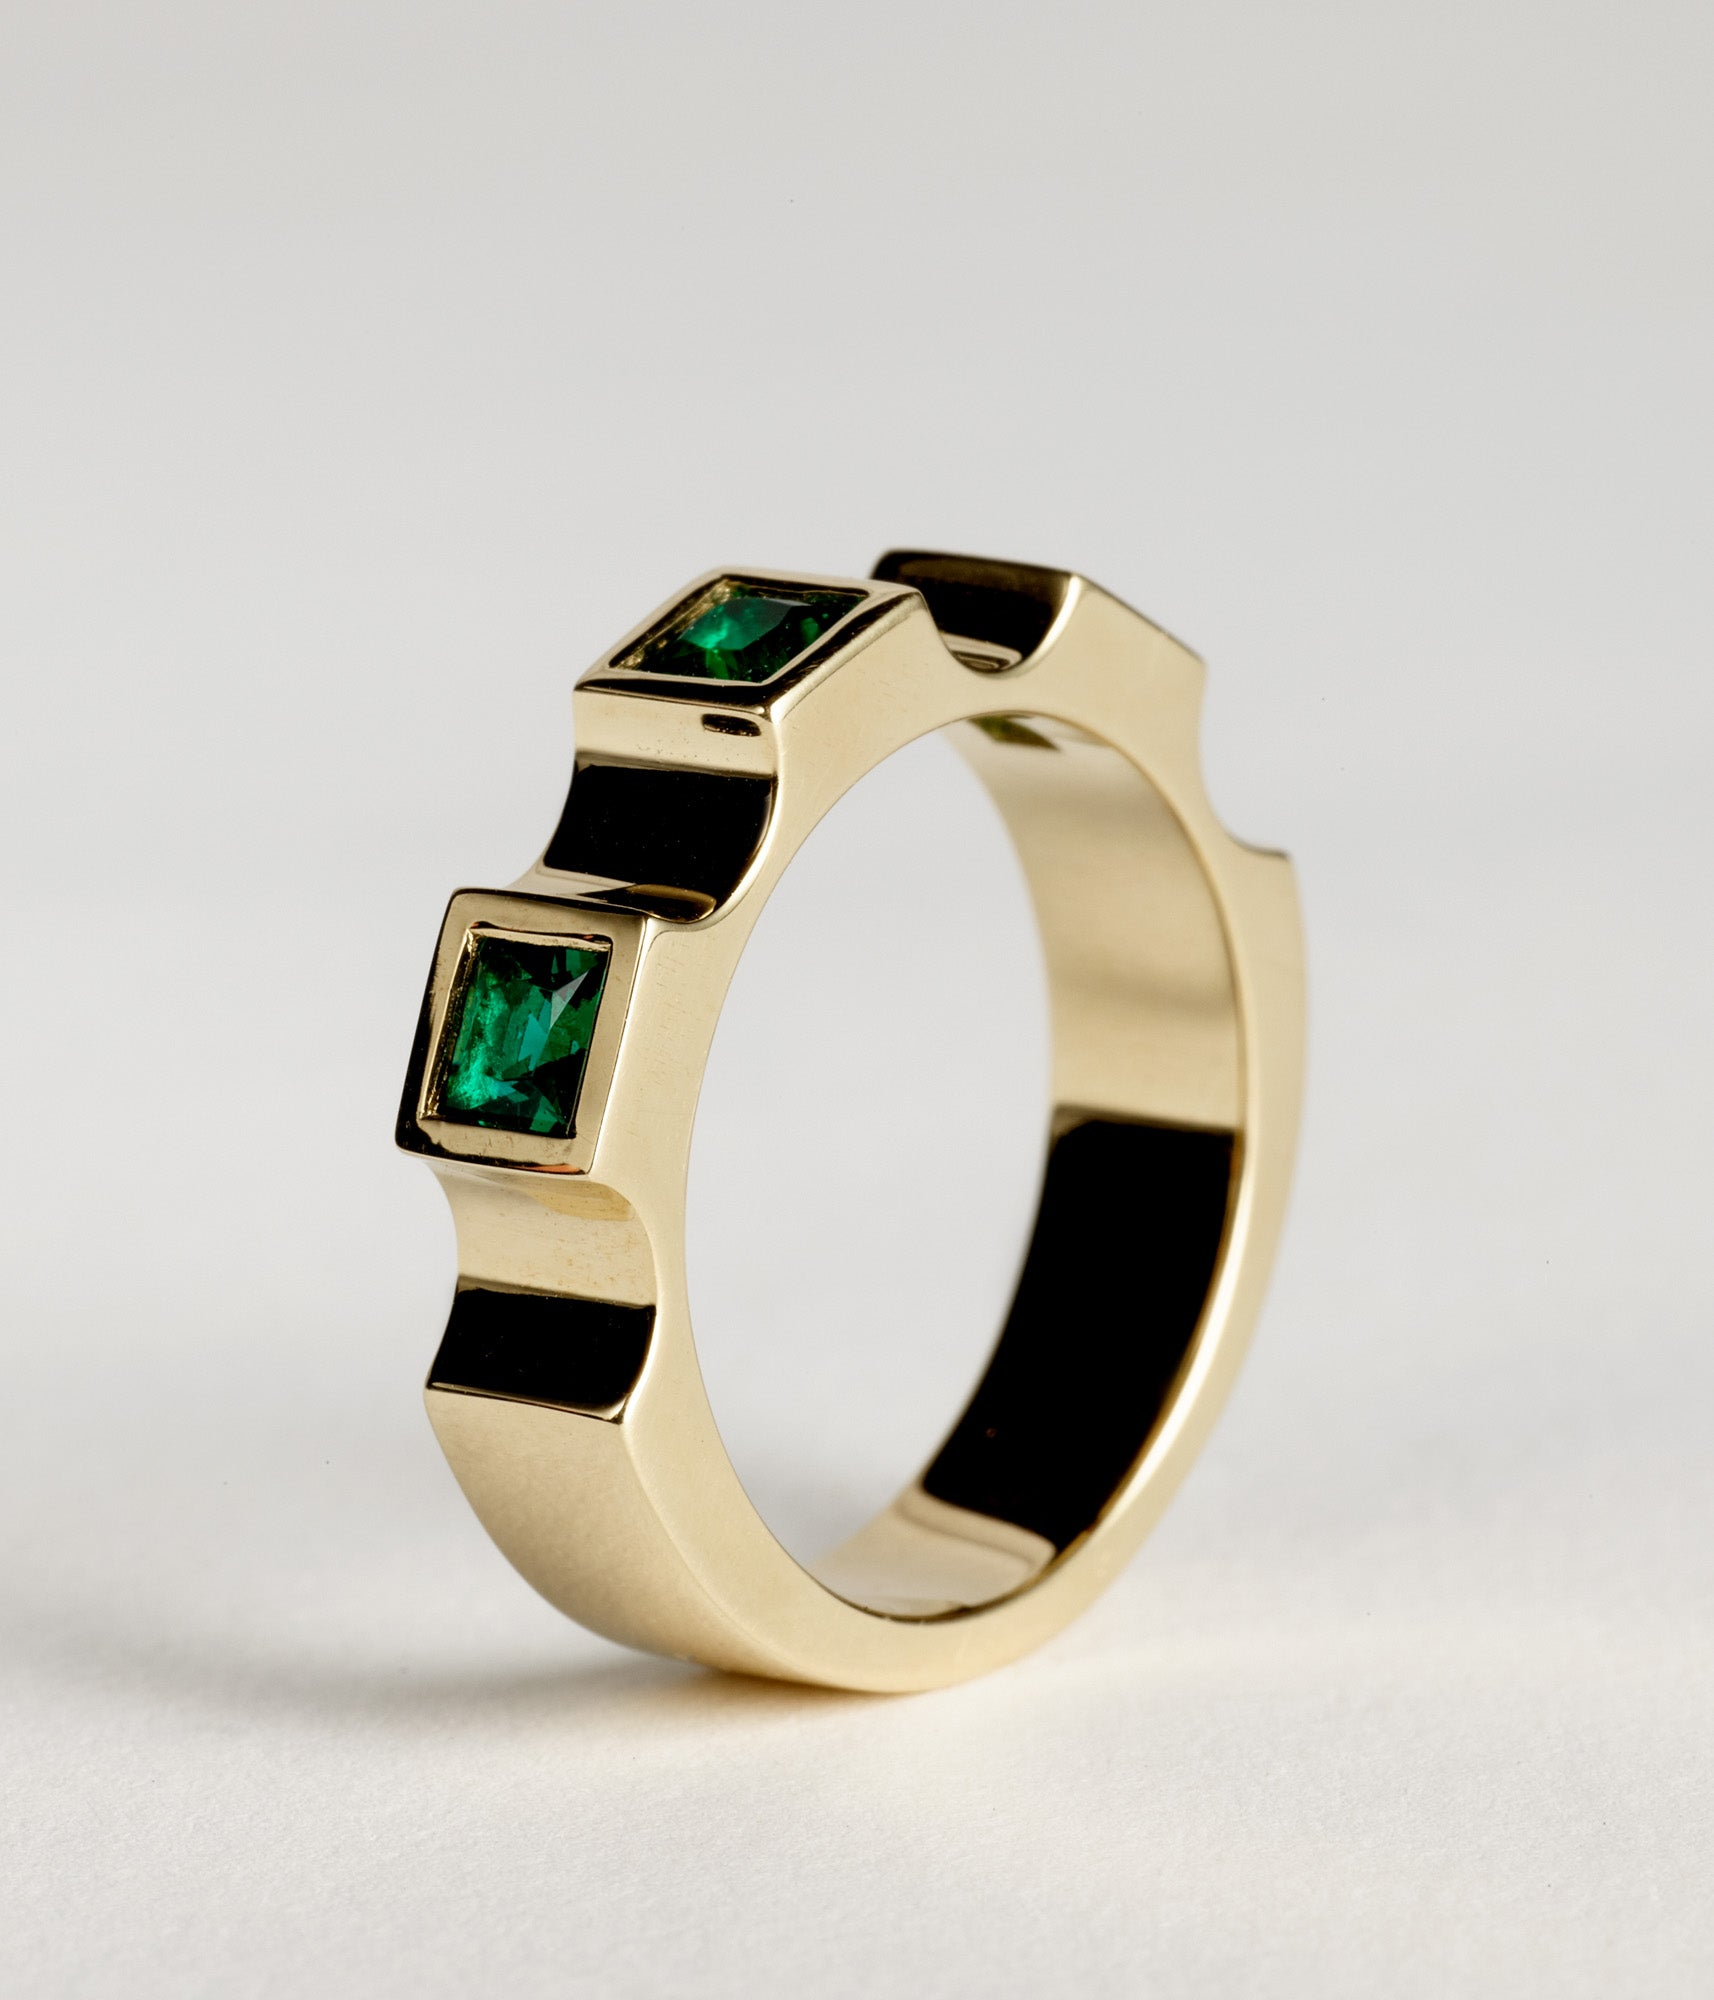 Parmentier window ring - Emerald